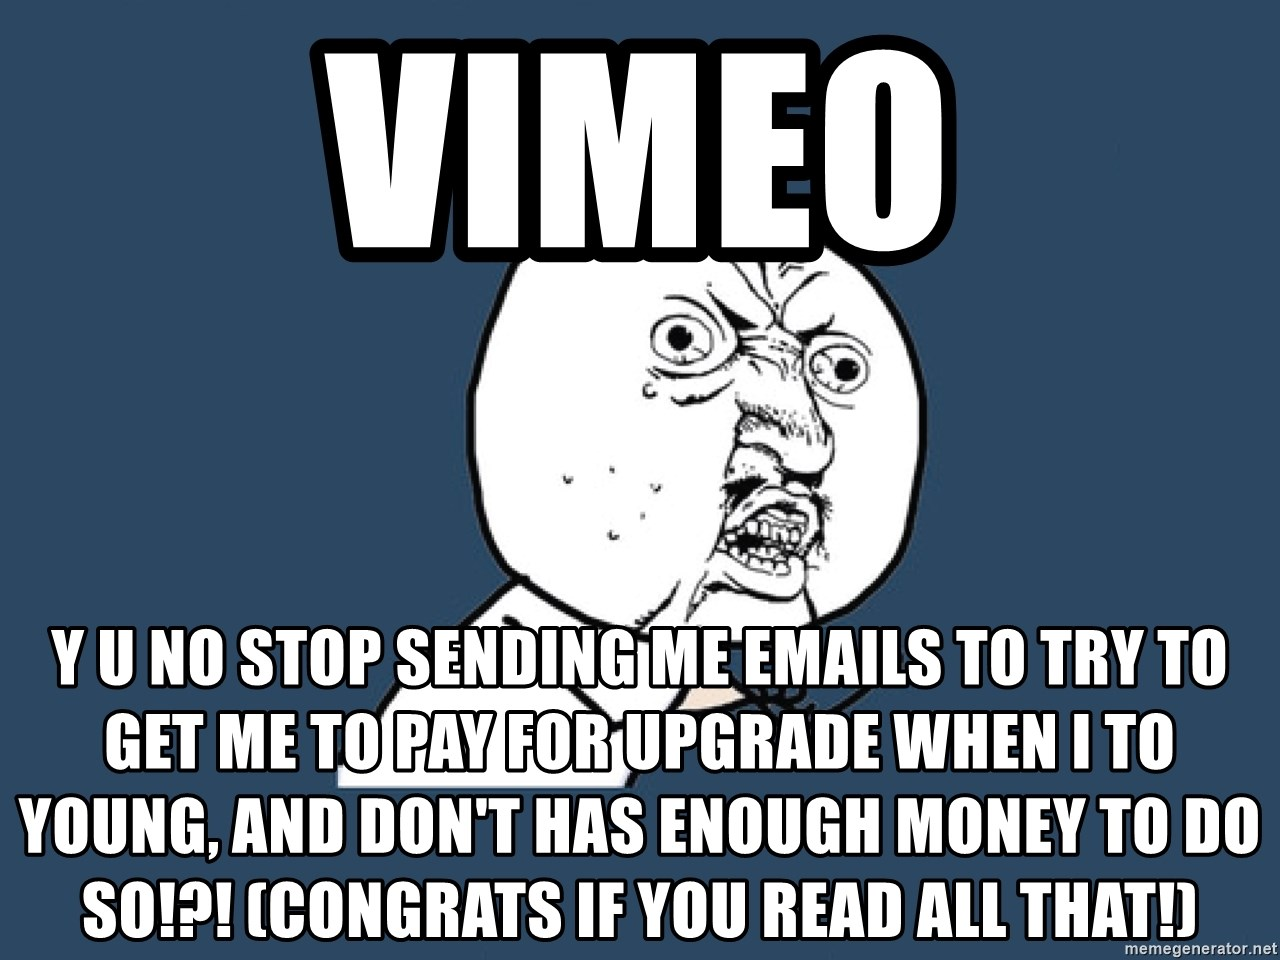 Y U No - VIMEO Y U NO STOP SENDING ME EMAILS TO TRY TO GET ME TO PAY FOR UPGRADE WHEN I TO YOUNG, AND DON'T HAS ENOUGH MONEY TO DO SO!?! (Congrats if you read all that!)